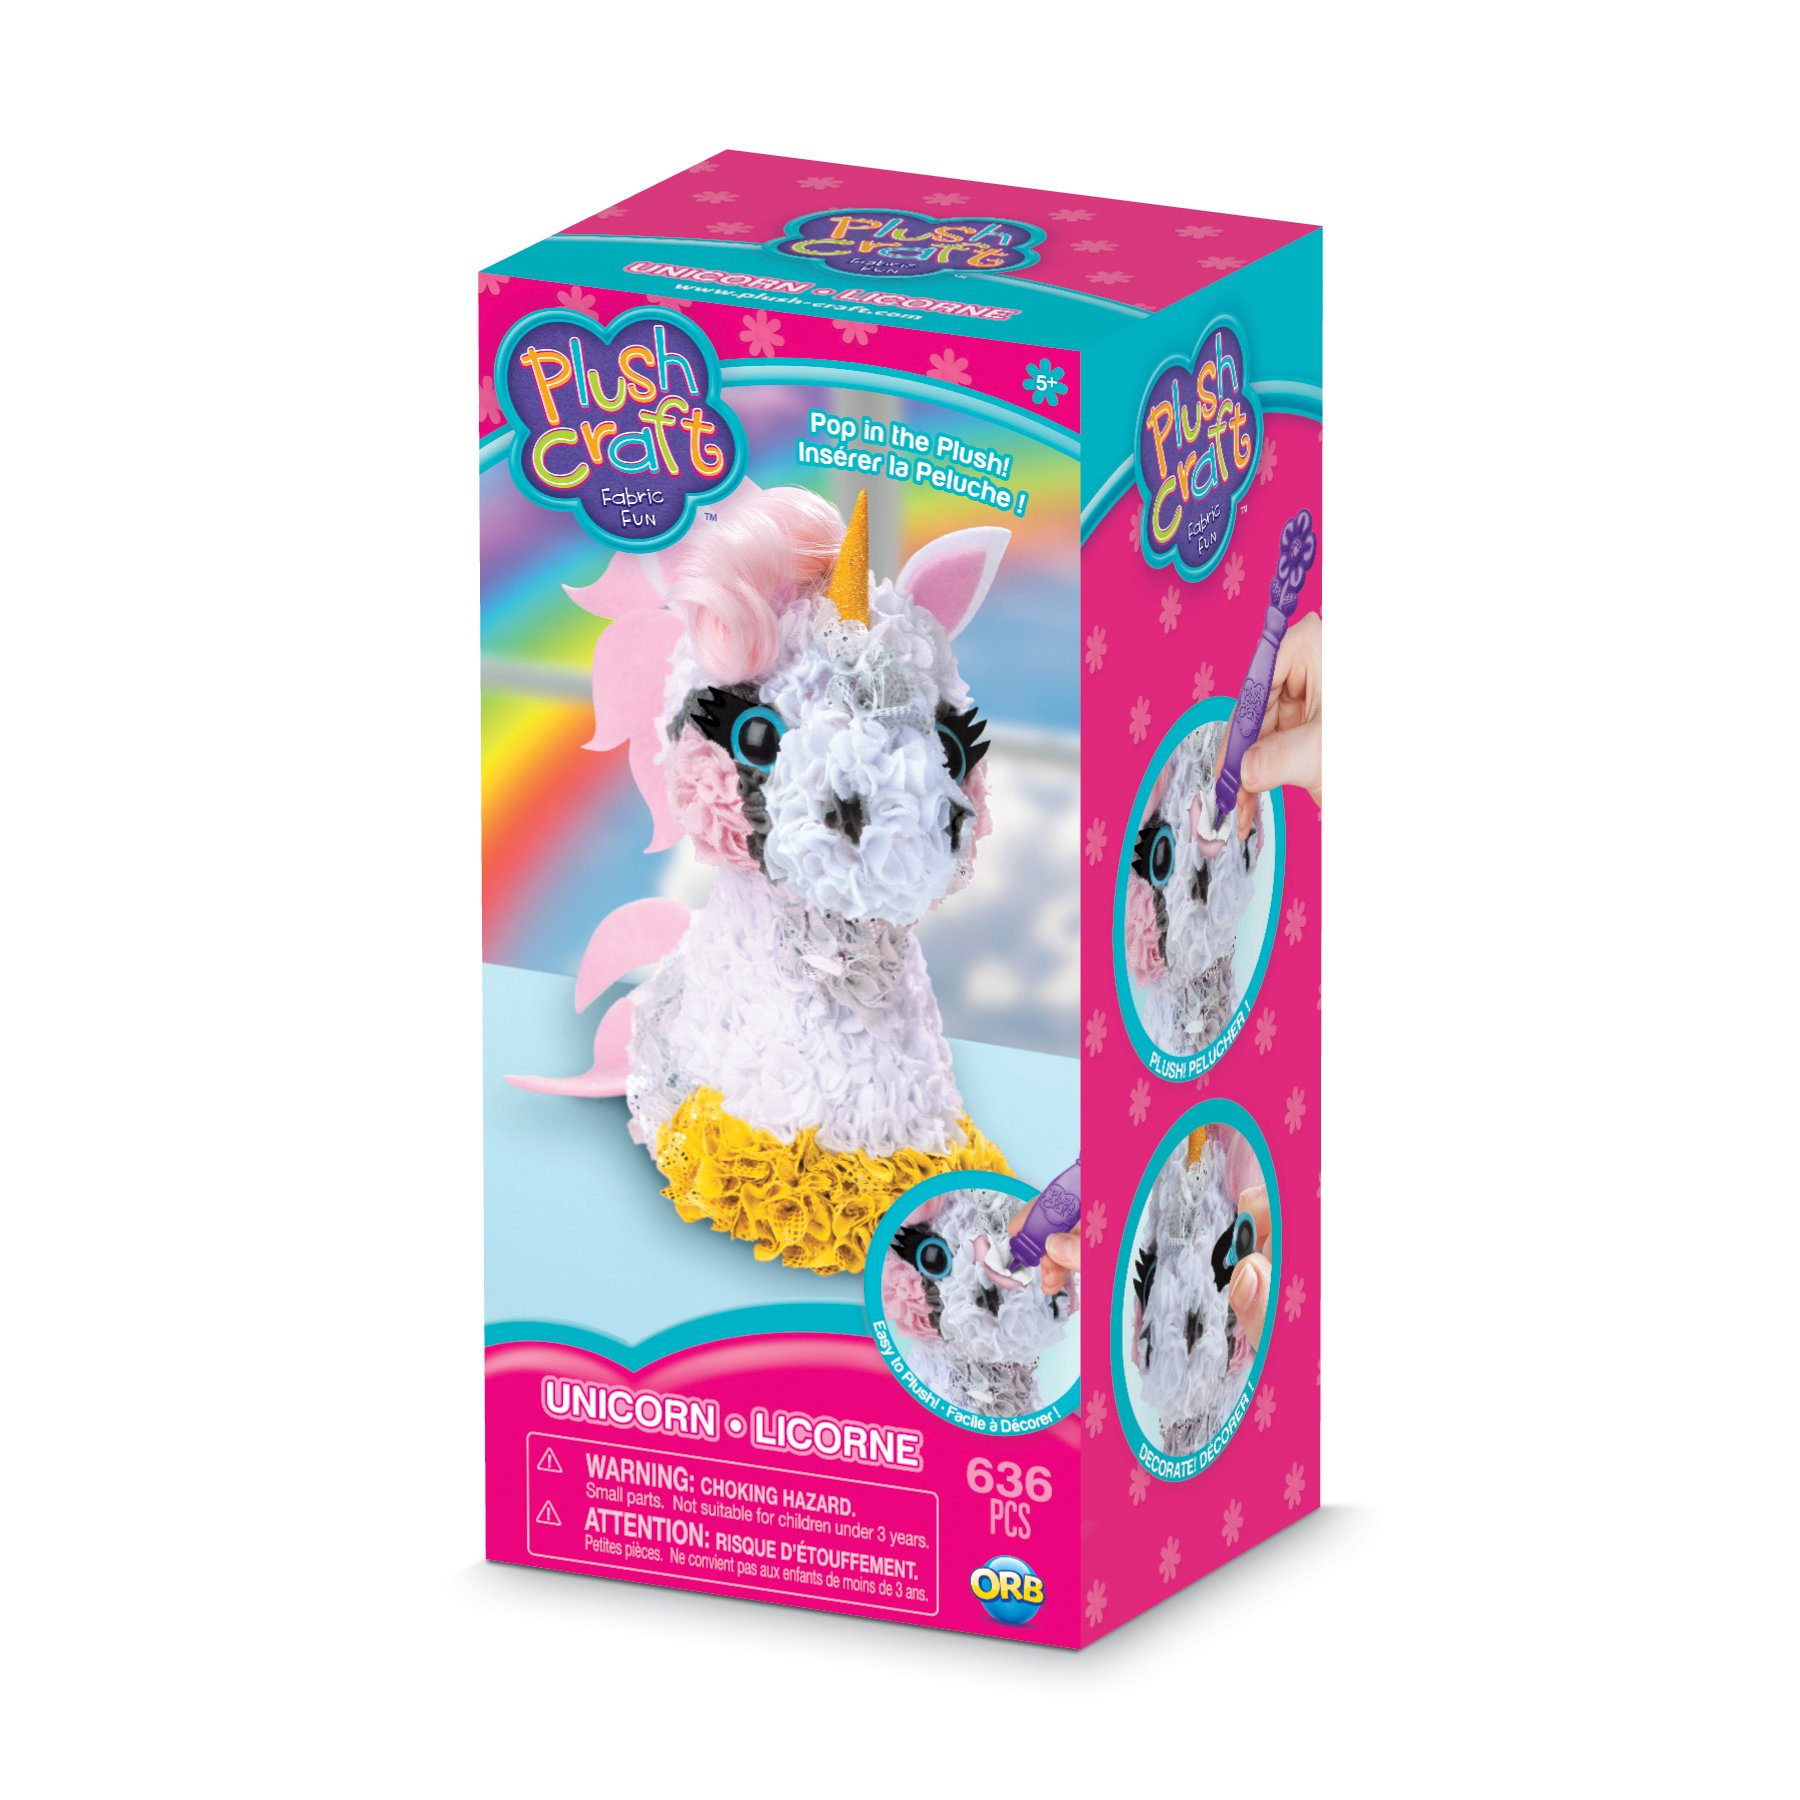 THE ORB FACTORY LIMITED 10027964 Plush Craft 3D Unicorn, 5'' x 4'' x 10'', Pink/White/Yellow/Grey by THE ORB FACTORY LIMITED